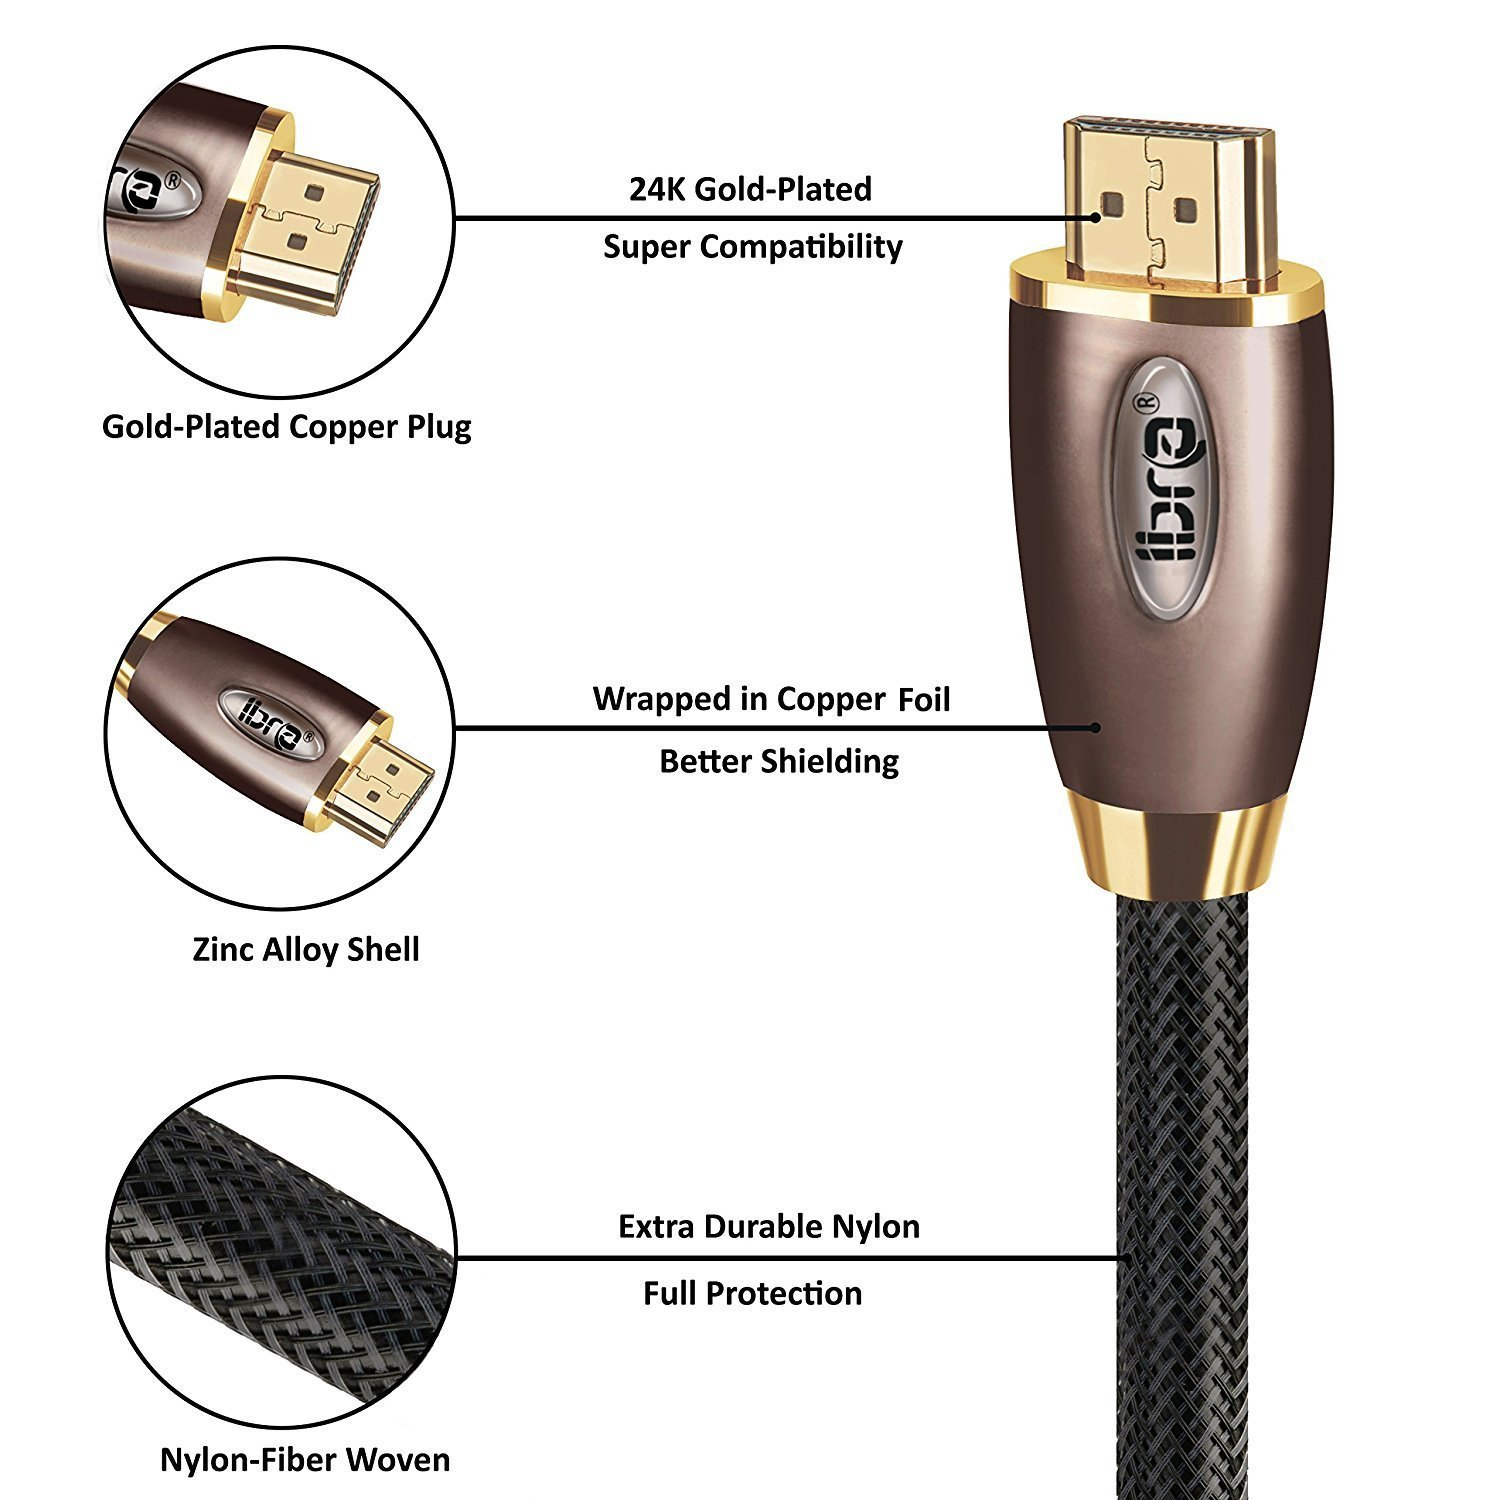 IBRA RED HDMI Cable 10M High Speed PRO GOLD HDMI Cable v2.0//1.4a 3D 2160p PS4 SKY HD 4K@60Hz Ultra HD Ethernet Audio Return Virgin BT